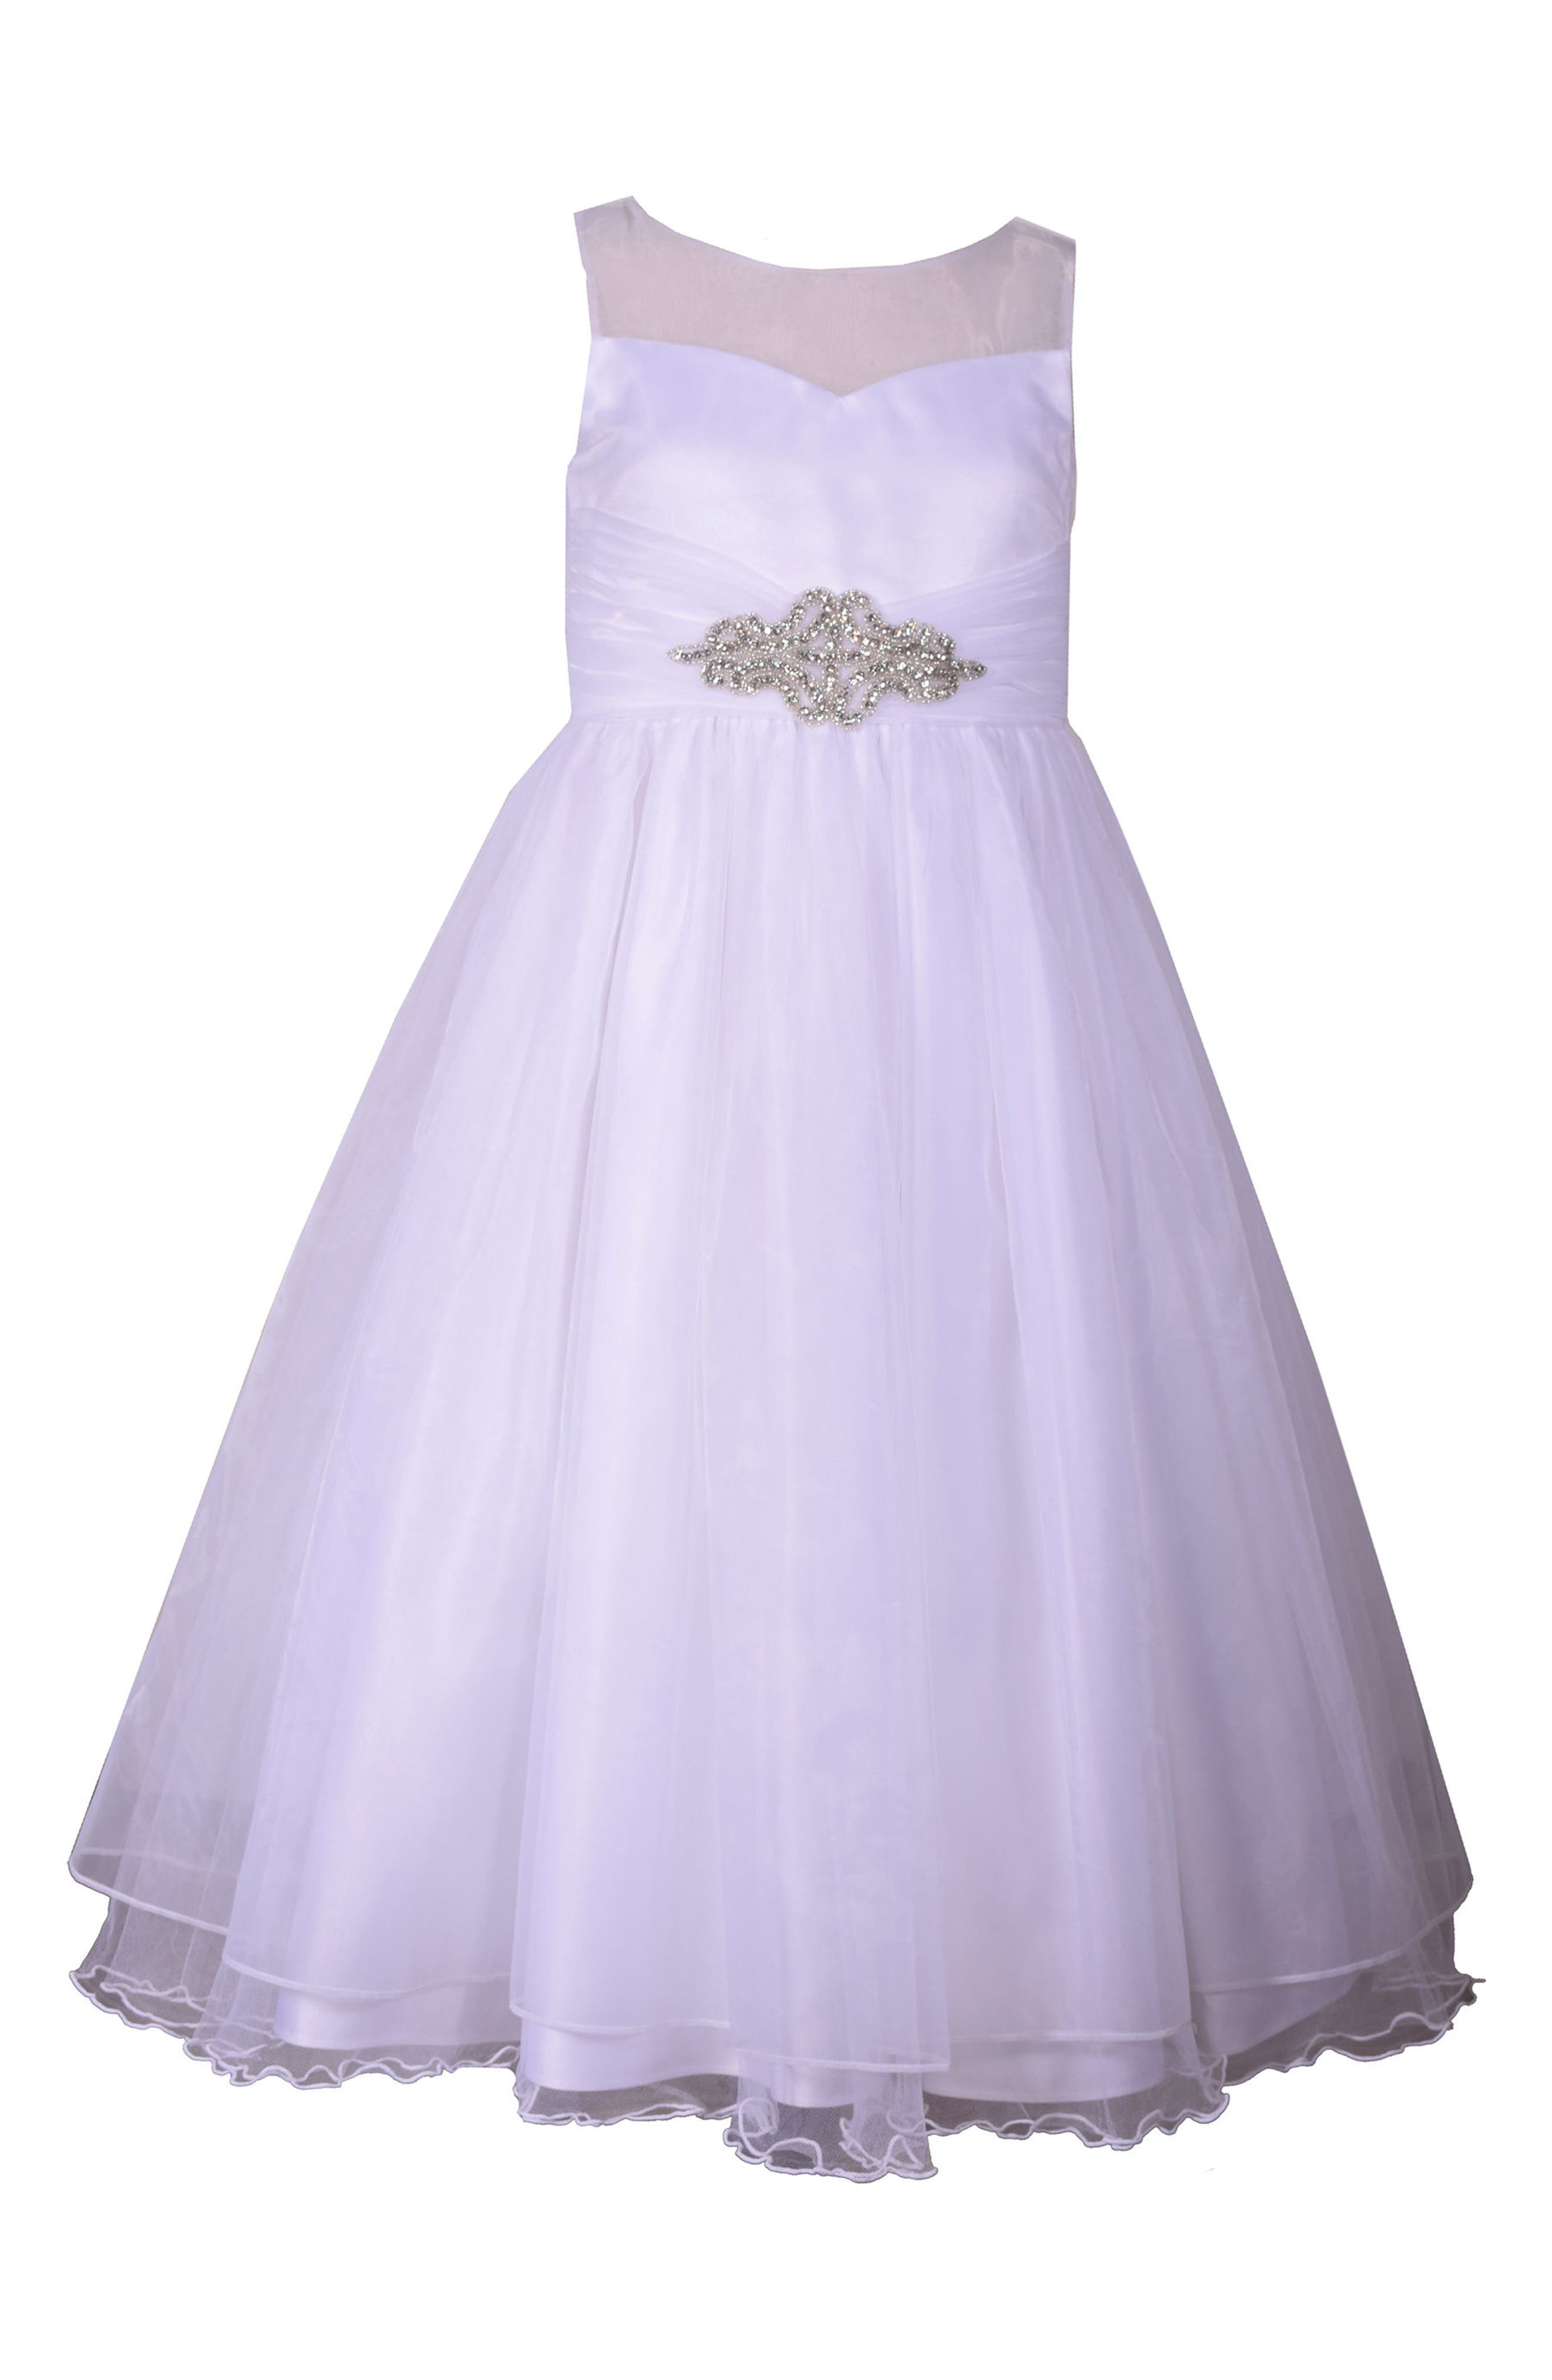 Iris & Ivy Embellished First Communion Dress (Little Girls & Big Girls)